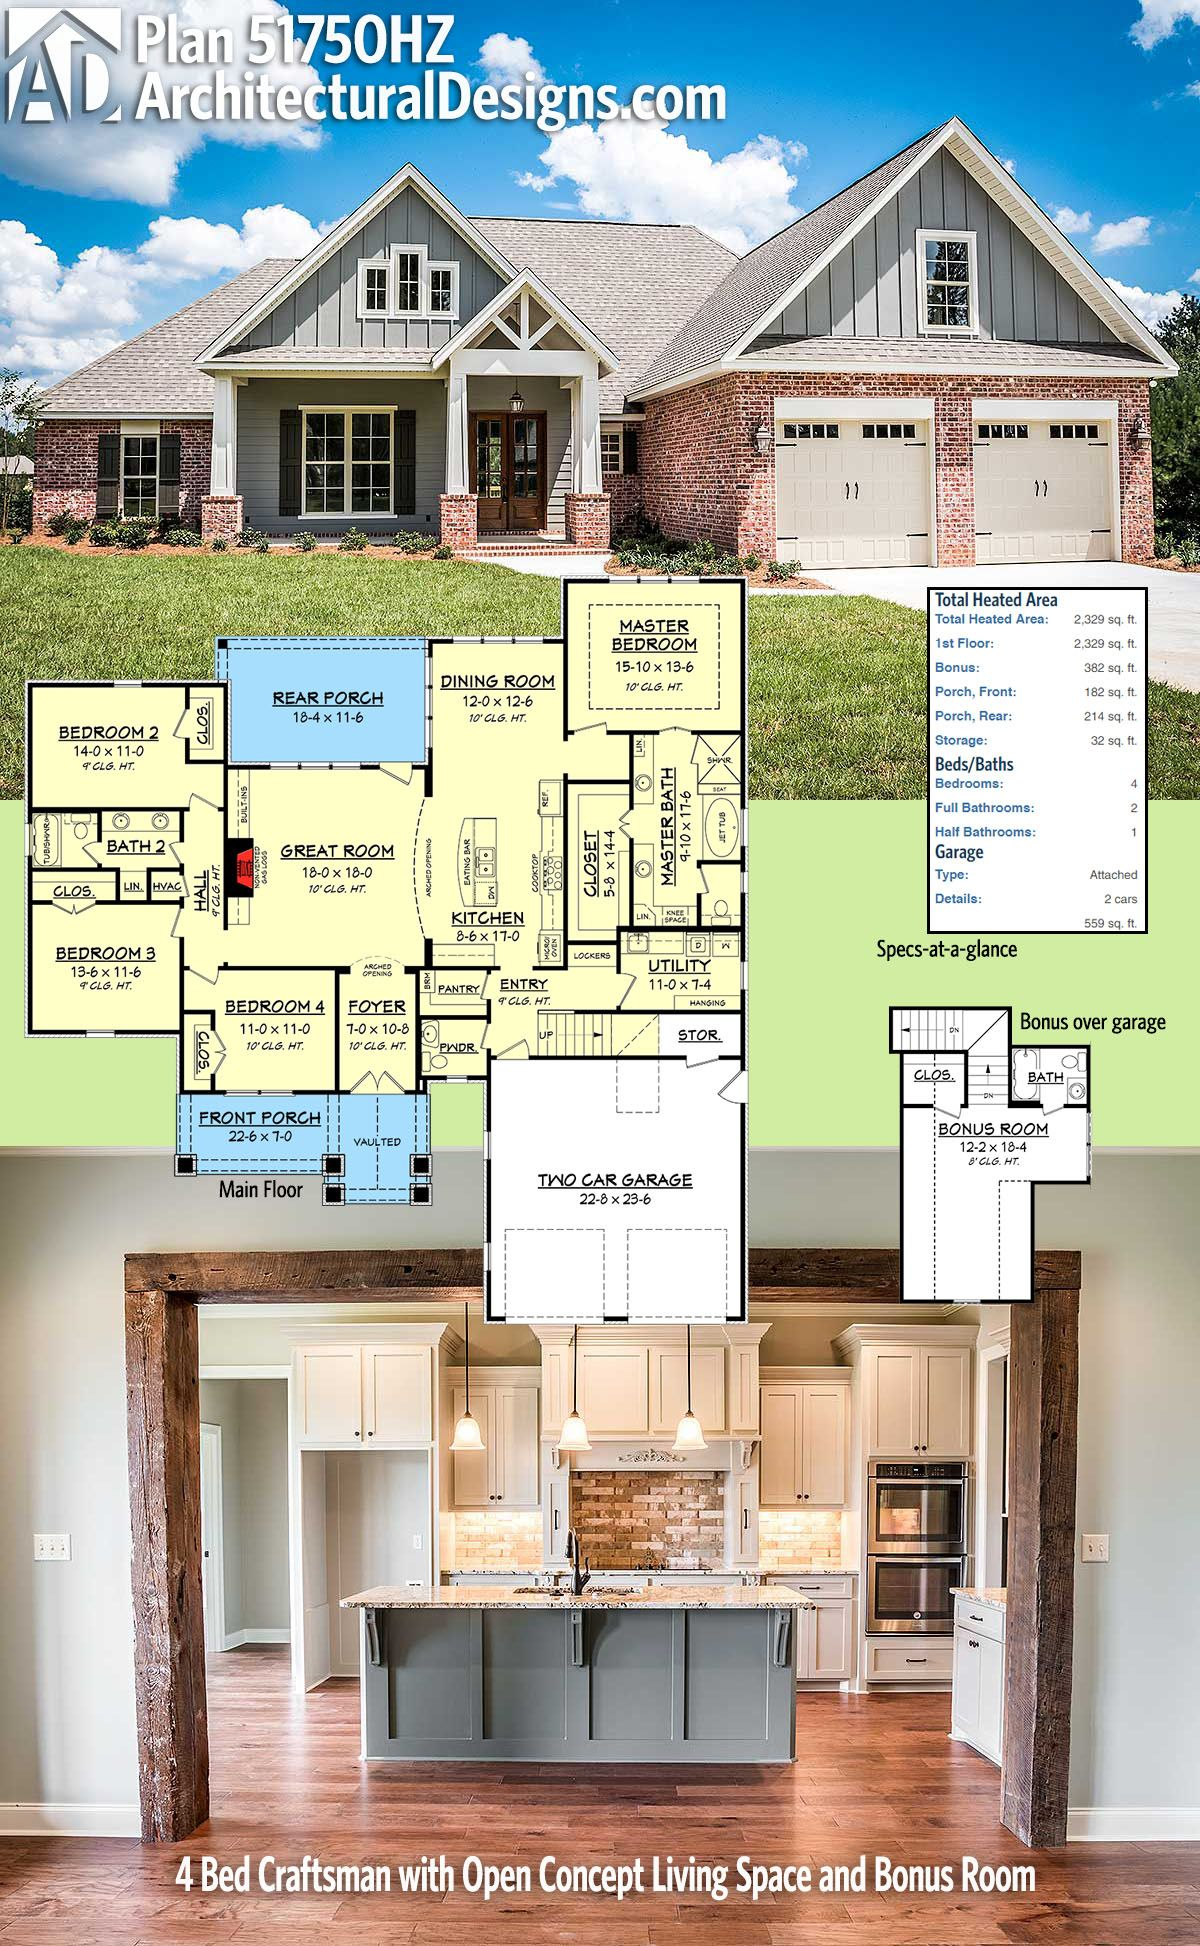 Plan 51750hz 4 Bed Craftsman With Open Concept Living Space And Bonus Room Craftsman House Plans Acadian House Plans New House Plans